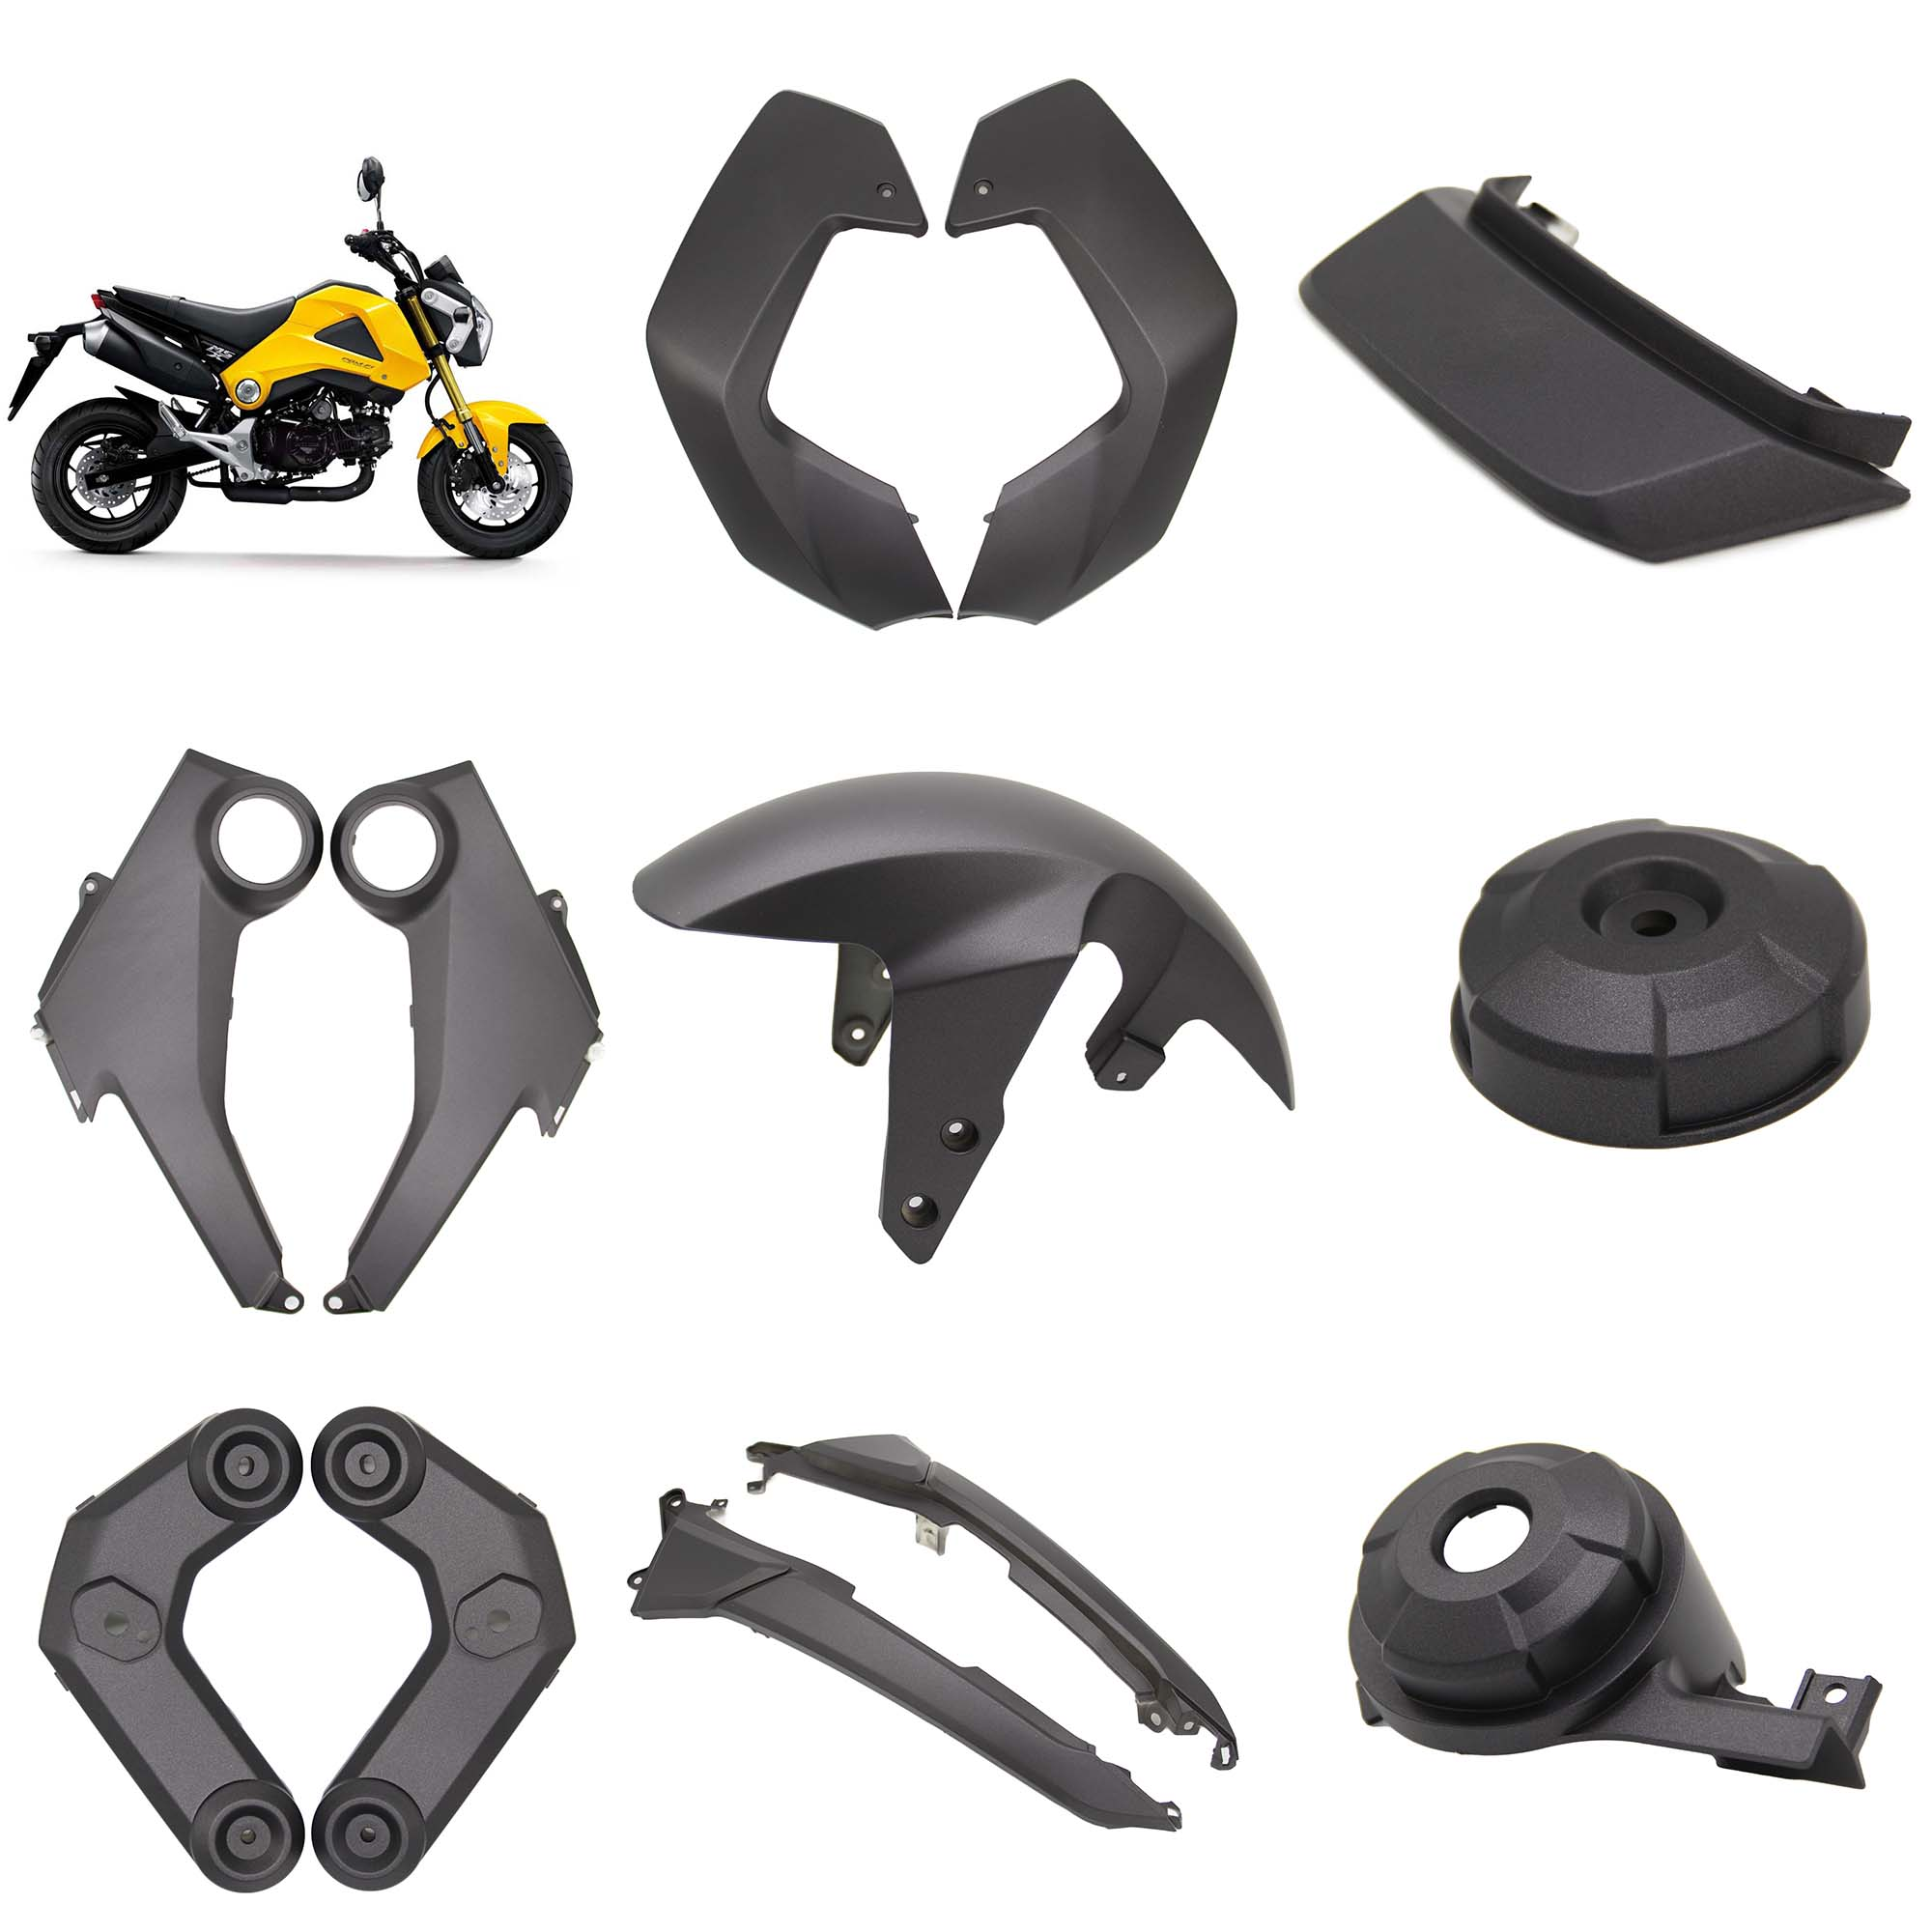 For Honda Msx125 Msx 125 Grom 2013 2014 2015 Fairing Kits Front Fender Mudguard Side Panel Cover Cowl Protective Guard